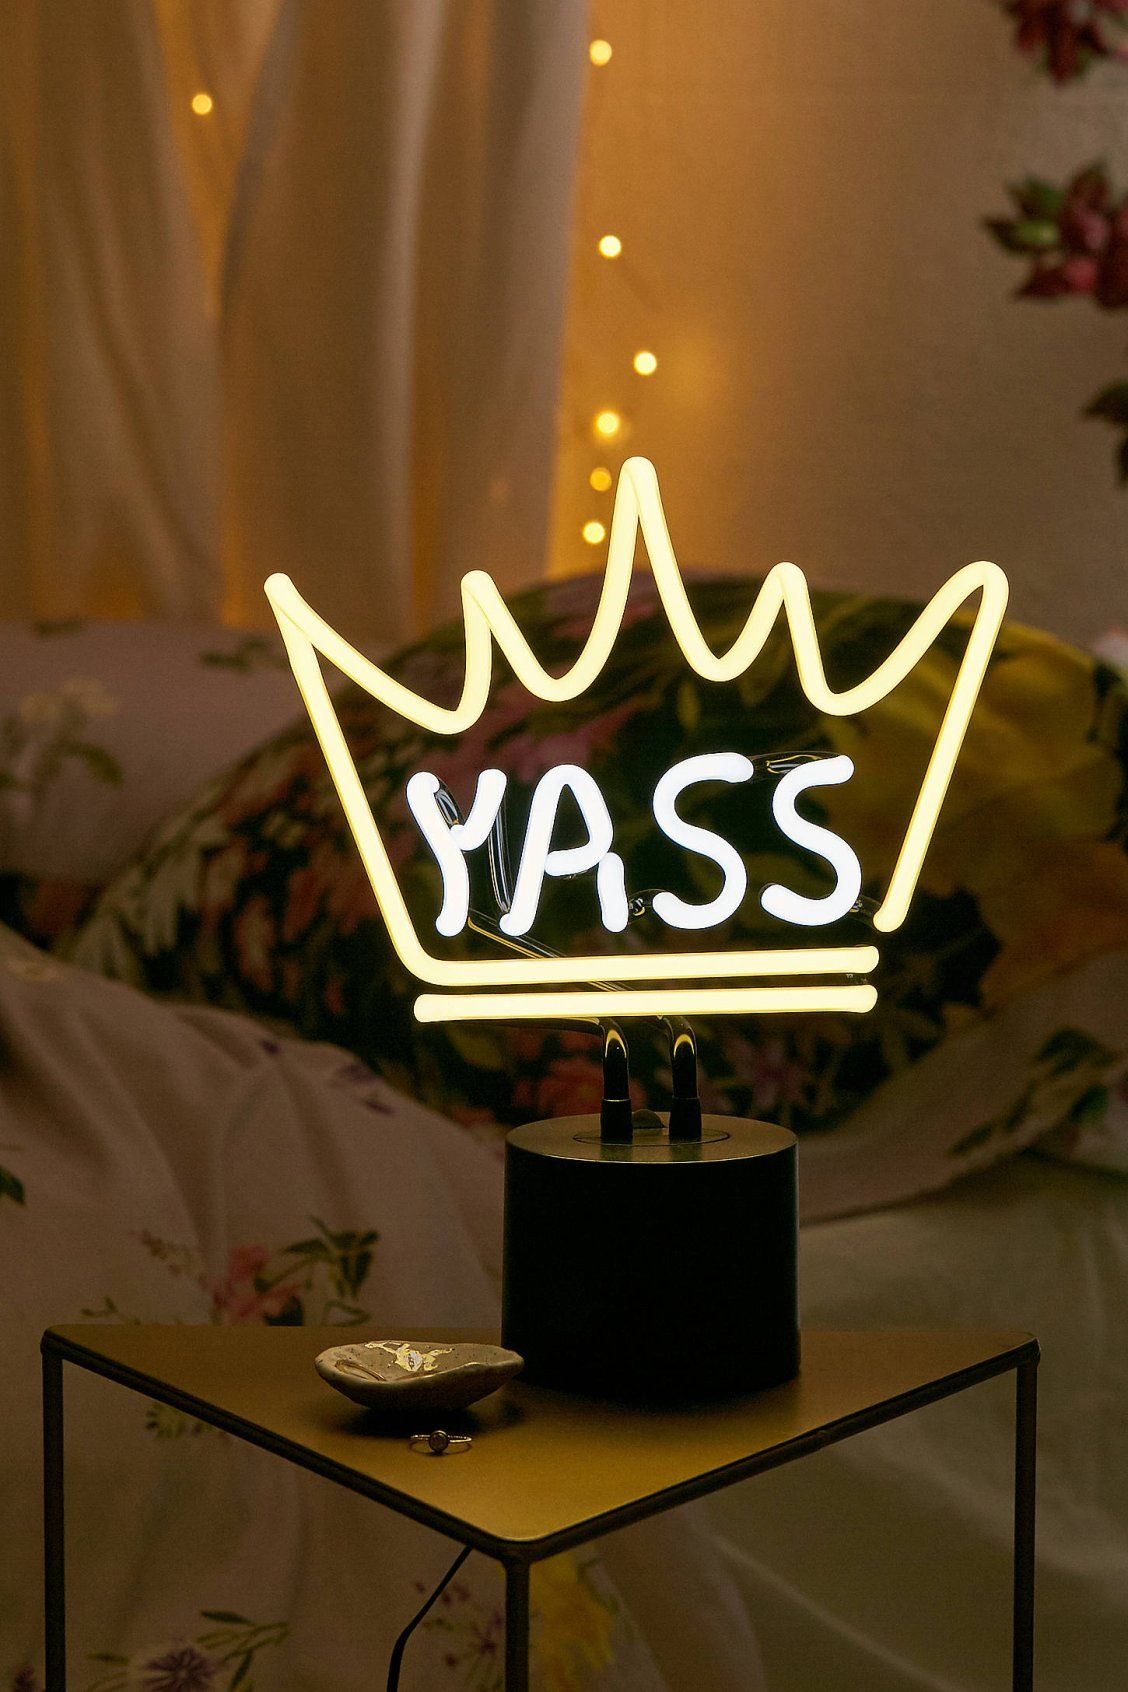 Yass Queen Neon Sign Table Lamp | Urban Outfitters